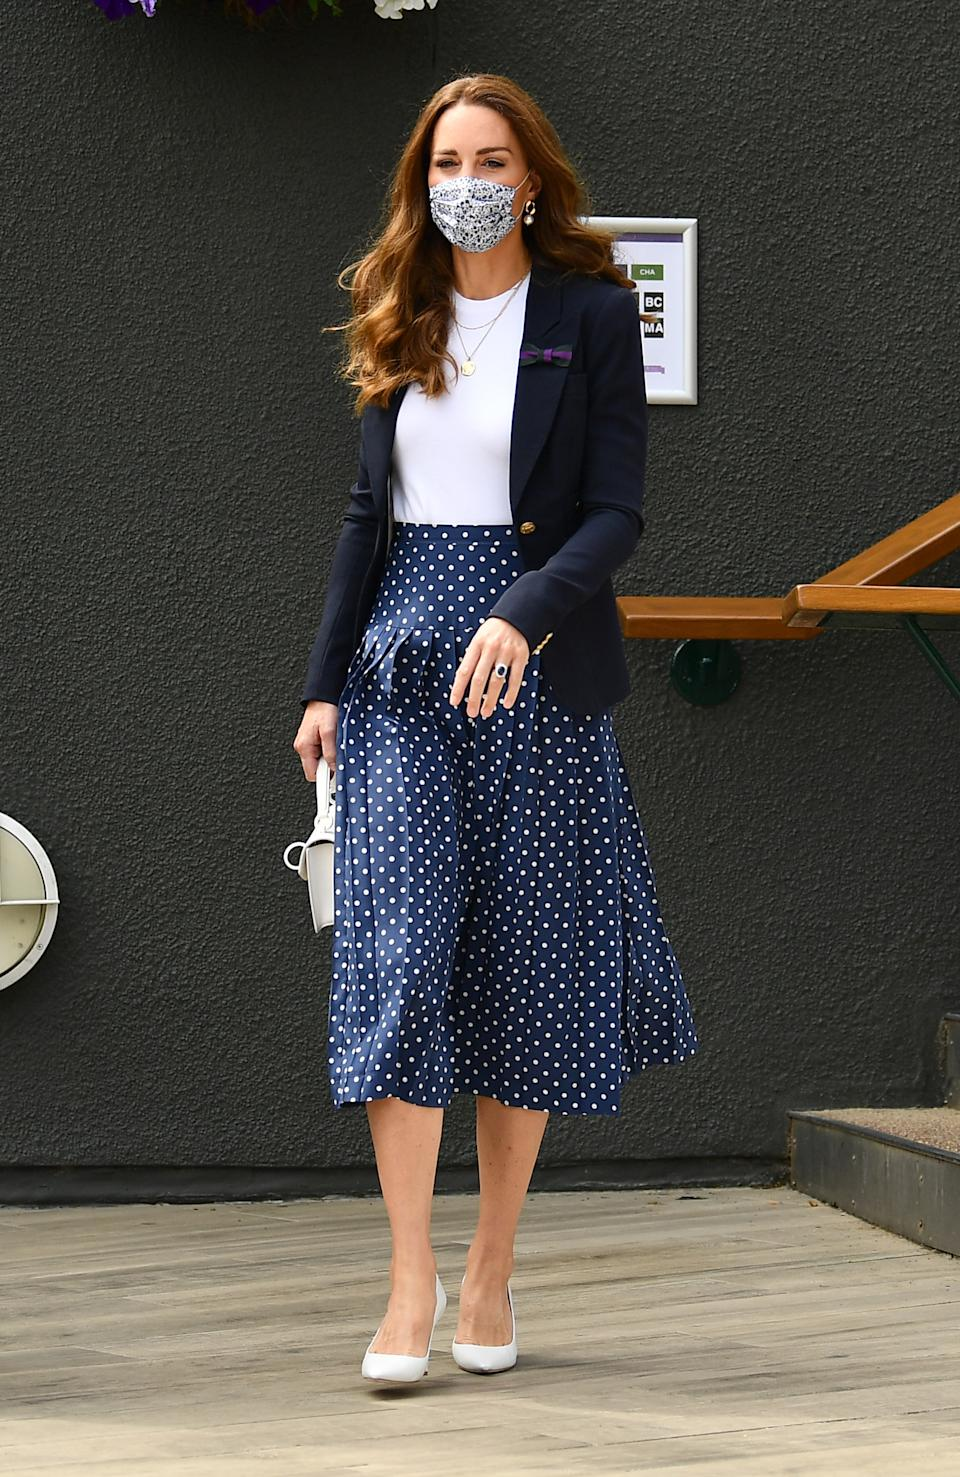 The Duchess of Cambridge arrives for day five of Wimbledon at The All England Lawn Tennis and Croquet Club, Wimbledon.